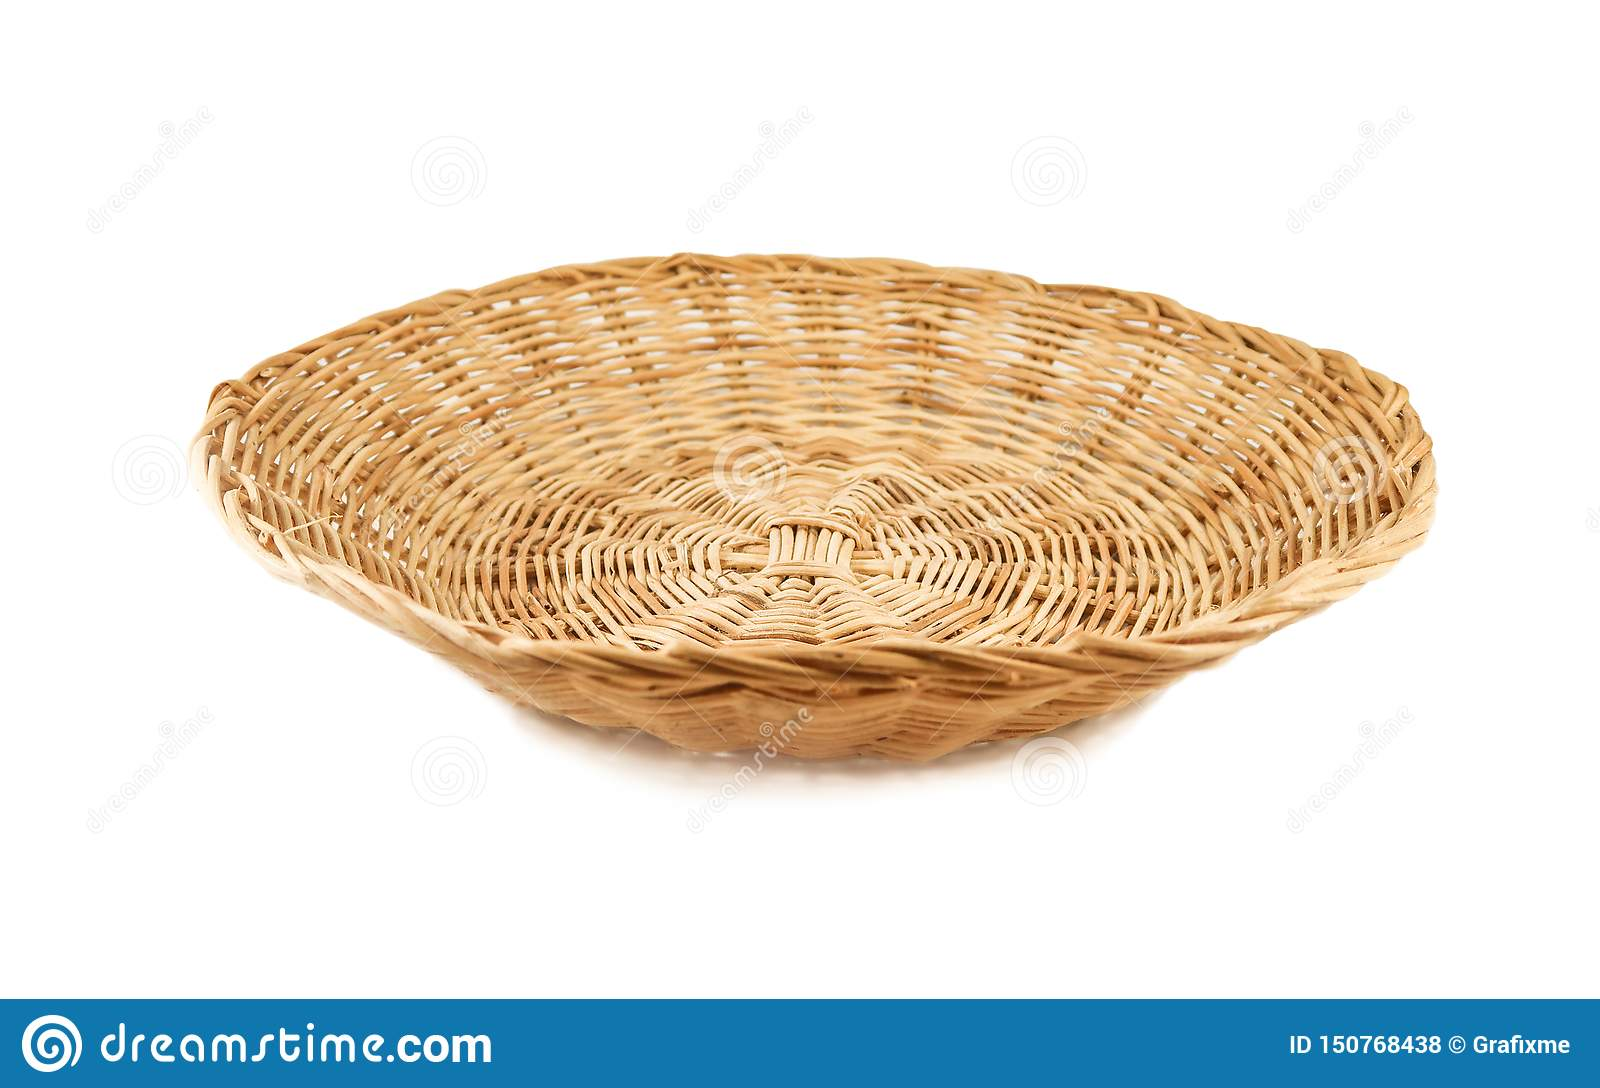 Weave basket on white background